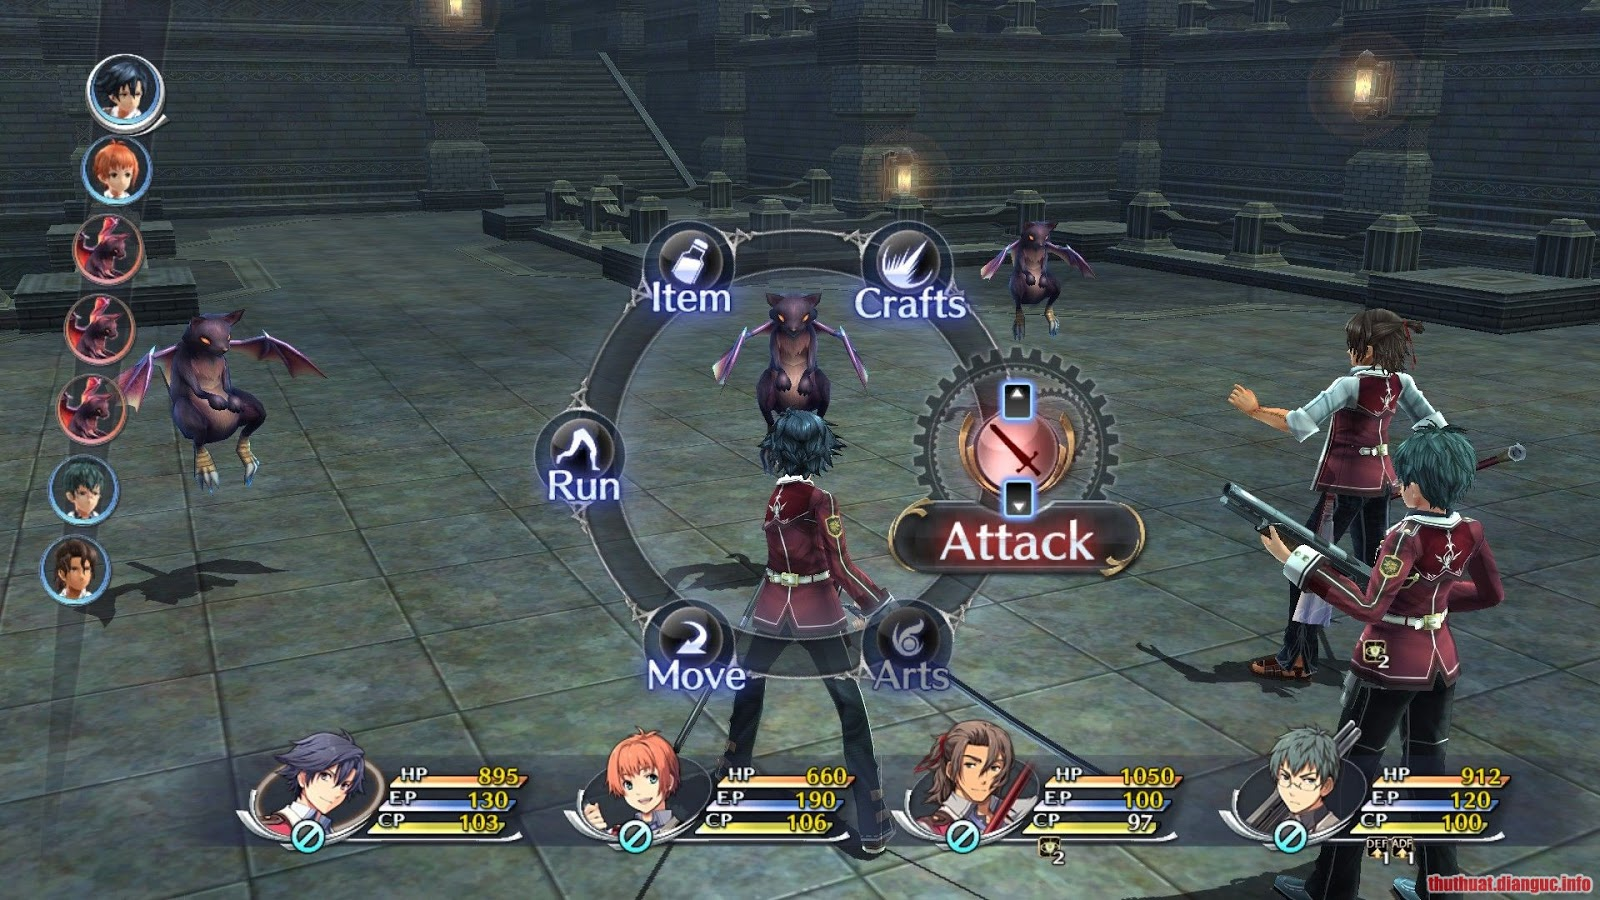 Download Game The Legend of Heroes: Trails of Cold Steel Full Crack, The Legend of Heroes: Trails of Cold Steel , The Legend of Heroes: Trails of Cold Steel free download, The Legend of Heroes: Trails of Cold Steel full crack, codex-the.legend.of.heroes.trails.of.cold.steel.iso